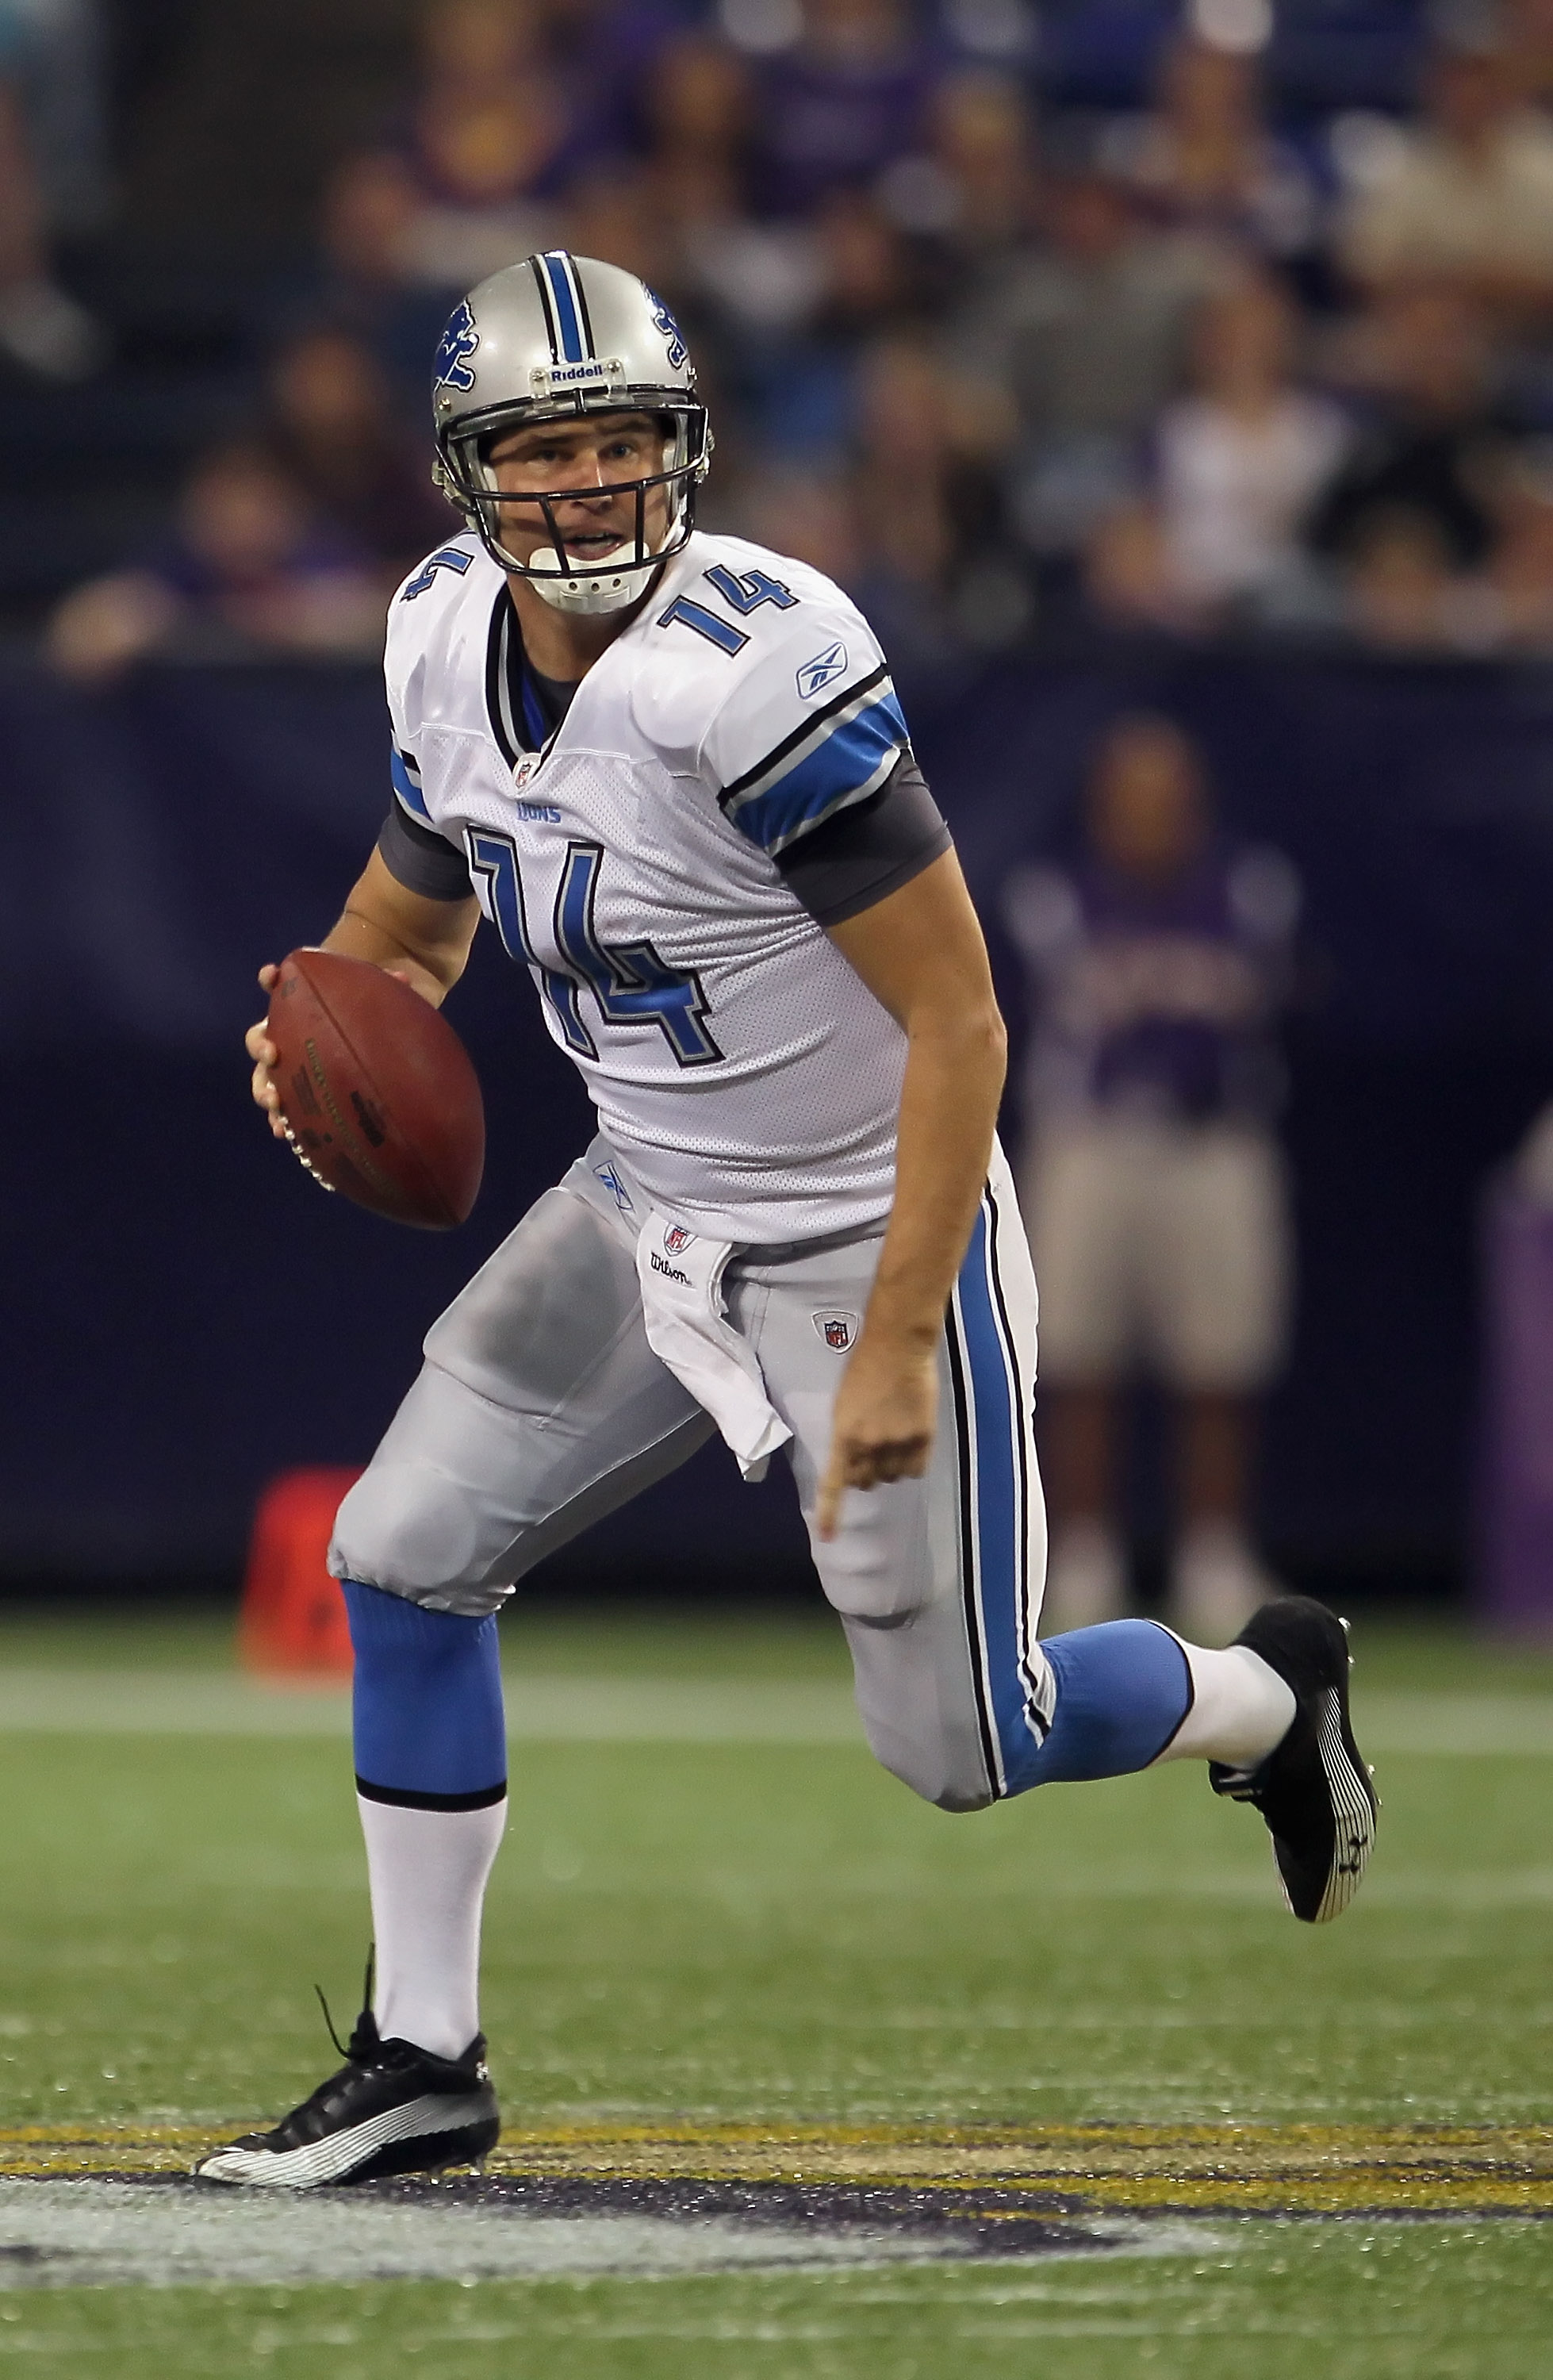 MINNEAPOLIS - SEPTEMBER 26:  Quarterback Shaun Hill #14 of the Detroit Lions scrambles out of the pocket against the Minnesota Vikings during the first half at Hubert H. Humphrey Metrodome on September 26, 2010 in Minneapolis, Minnesota.  (Photo by Jeff G